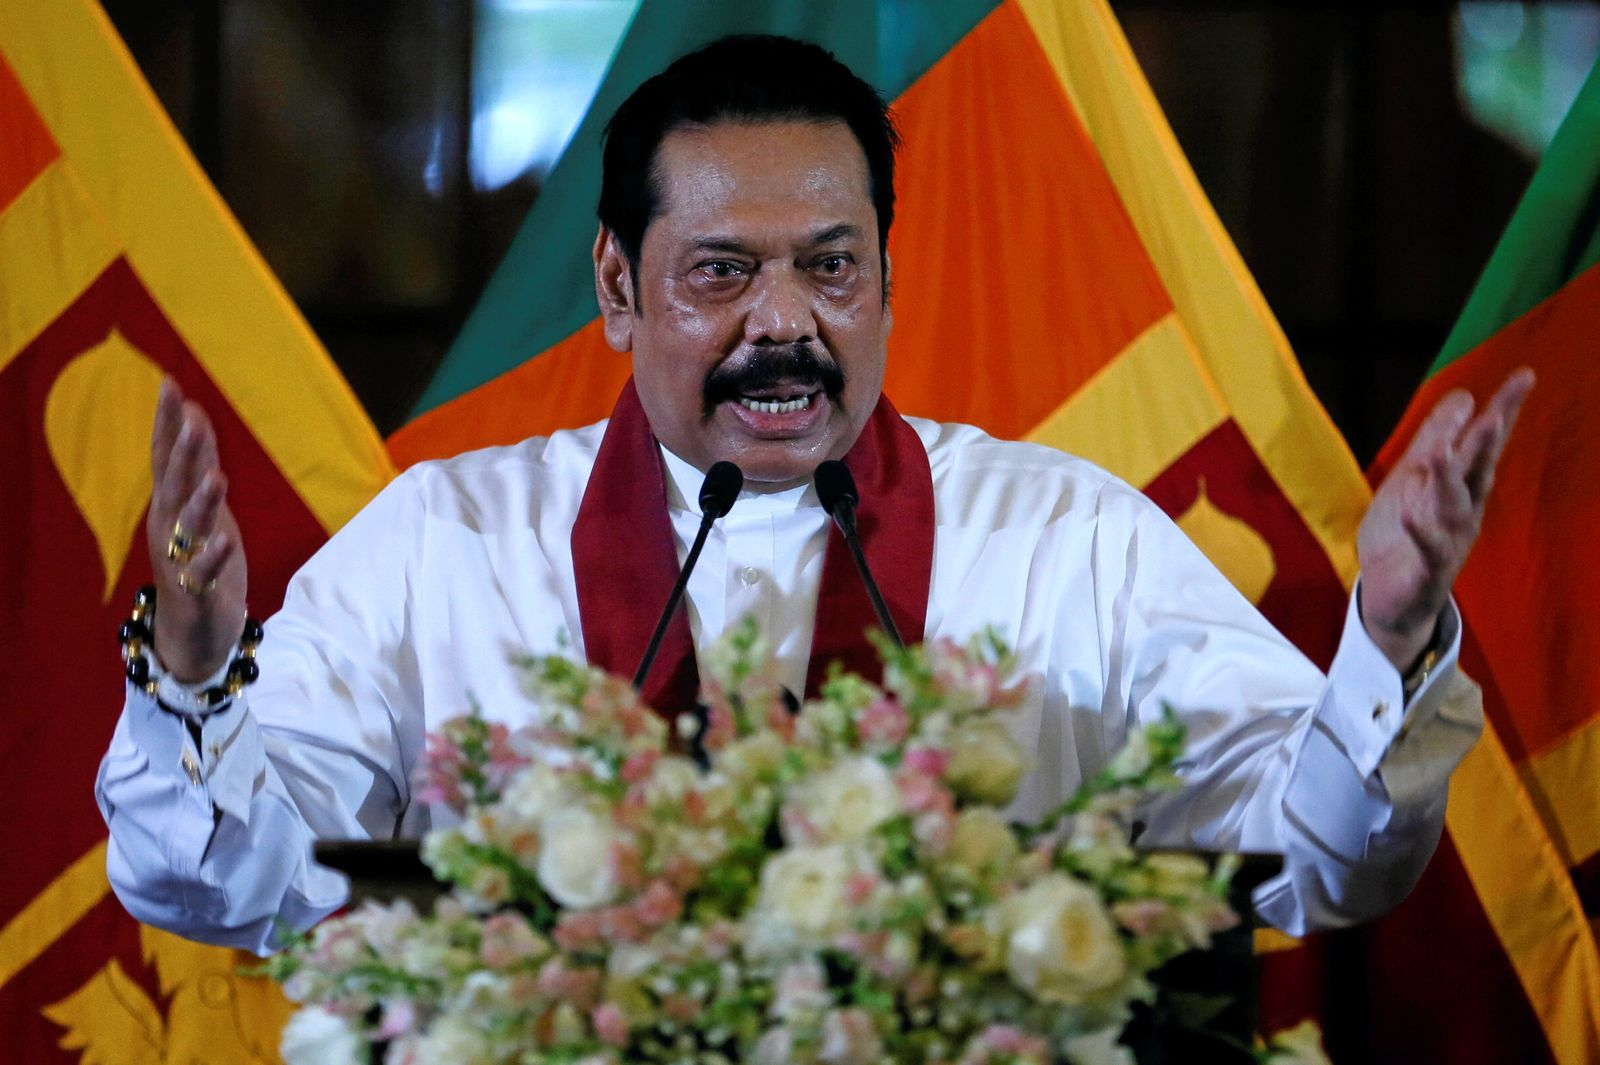 Sri Lanka's newly appointed Prime Minister Rajapaksa addresses the gathering during the ceremony to assume his duties as the Minister of Finance and Economic Affairs at the Finance Ministry in Colombo